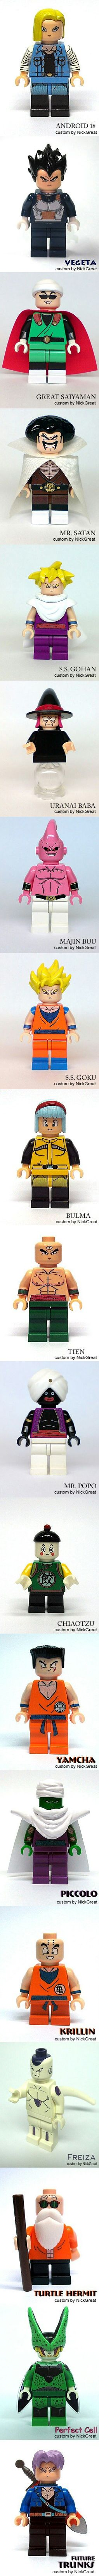 Dragon Ball Z Warriors Collection Lego style. I Kill for this.